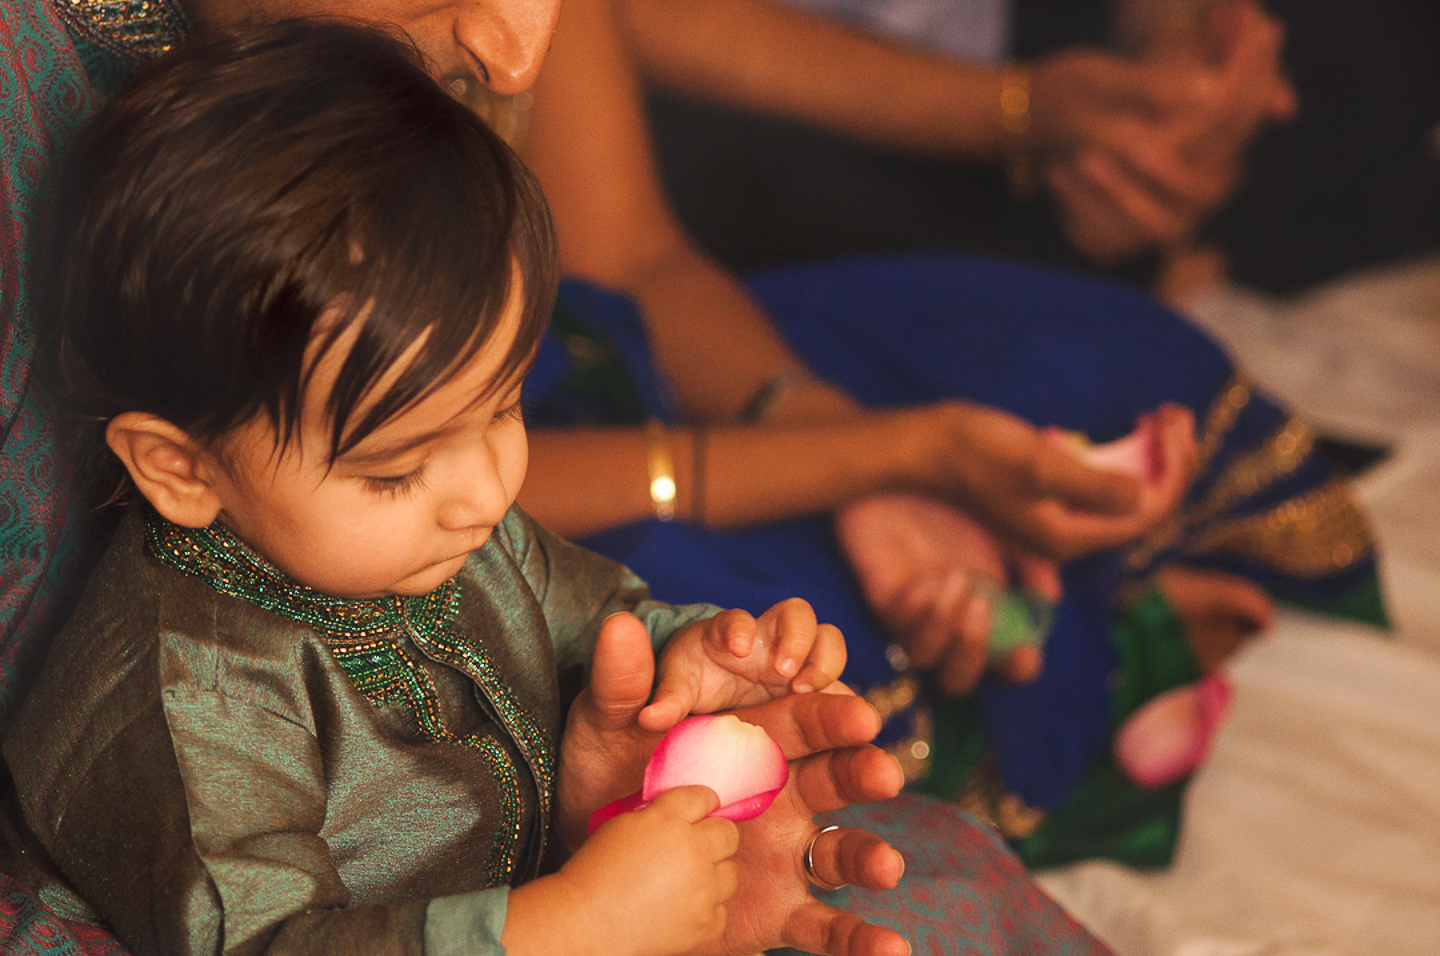 mithun-first-birthday-party-event-photography-long-island-ny-first-birthday-0032.jpg